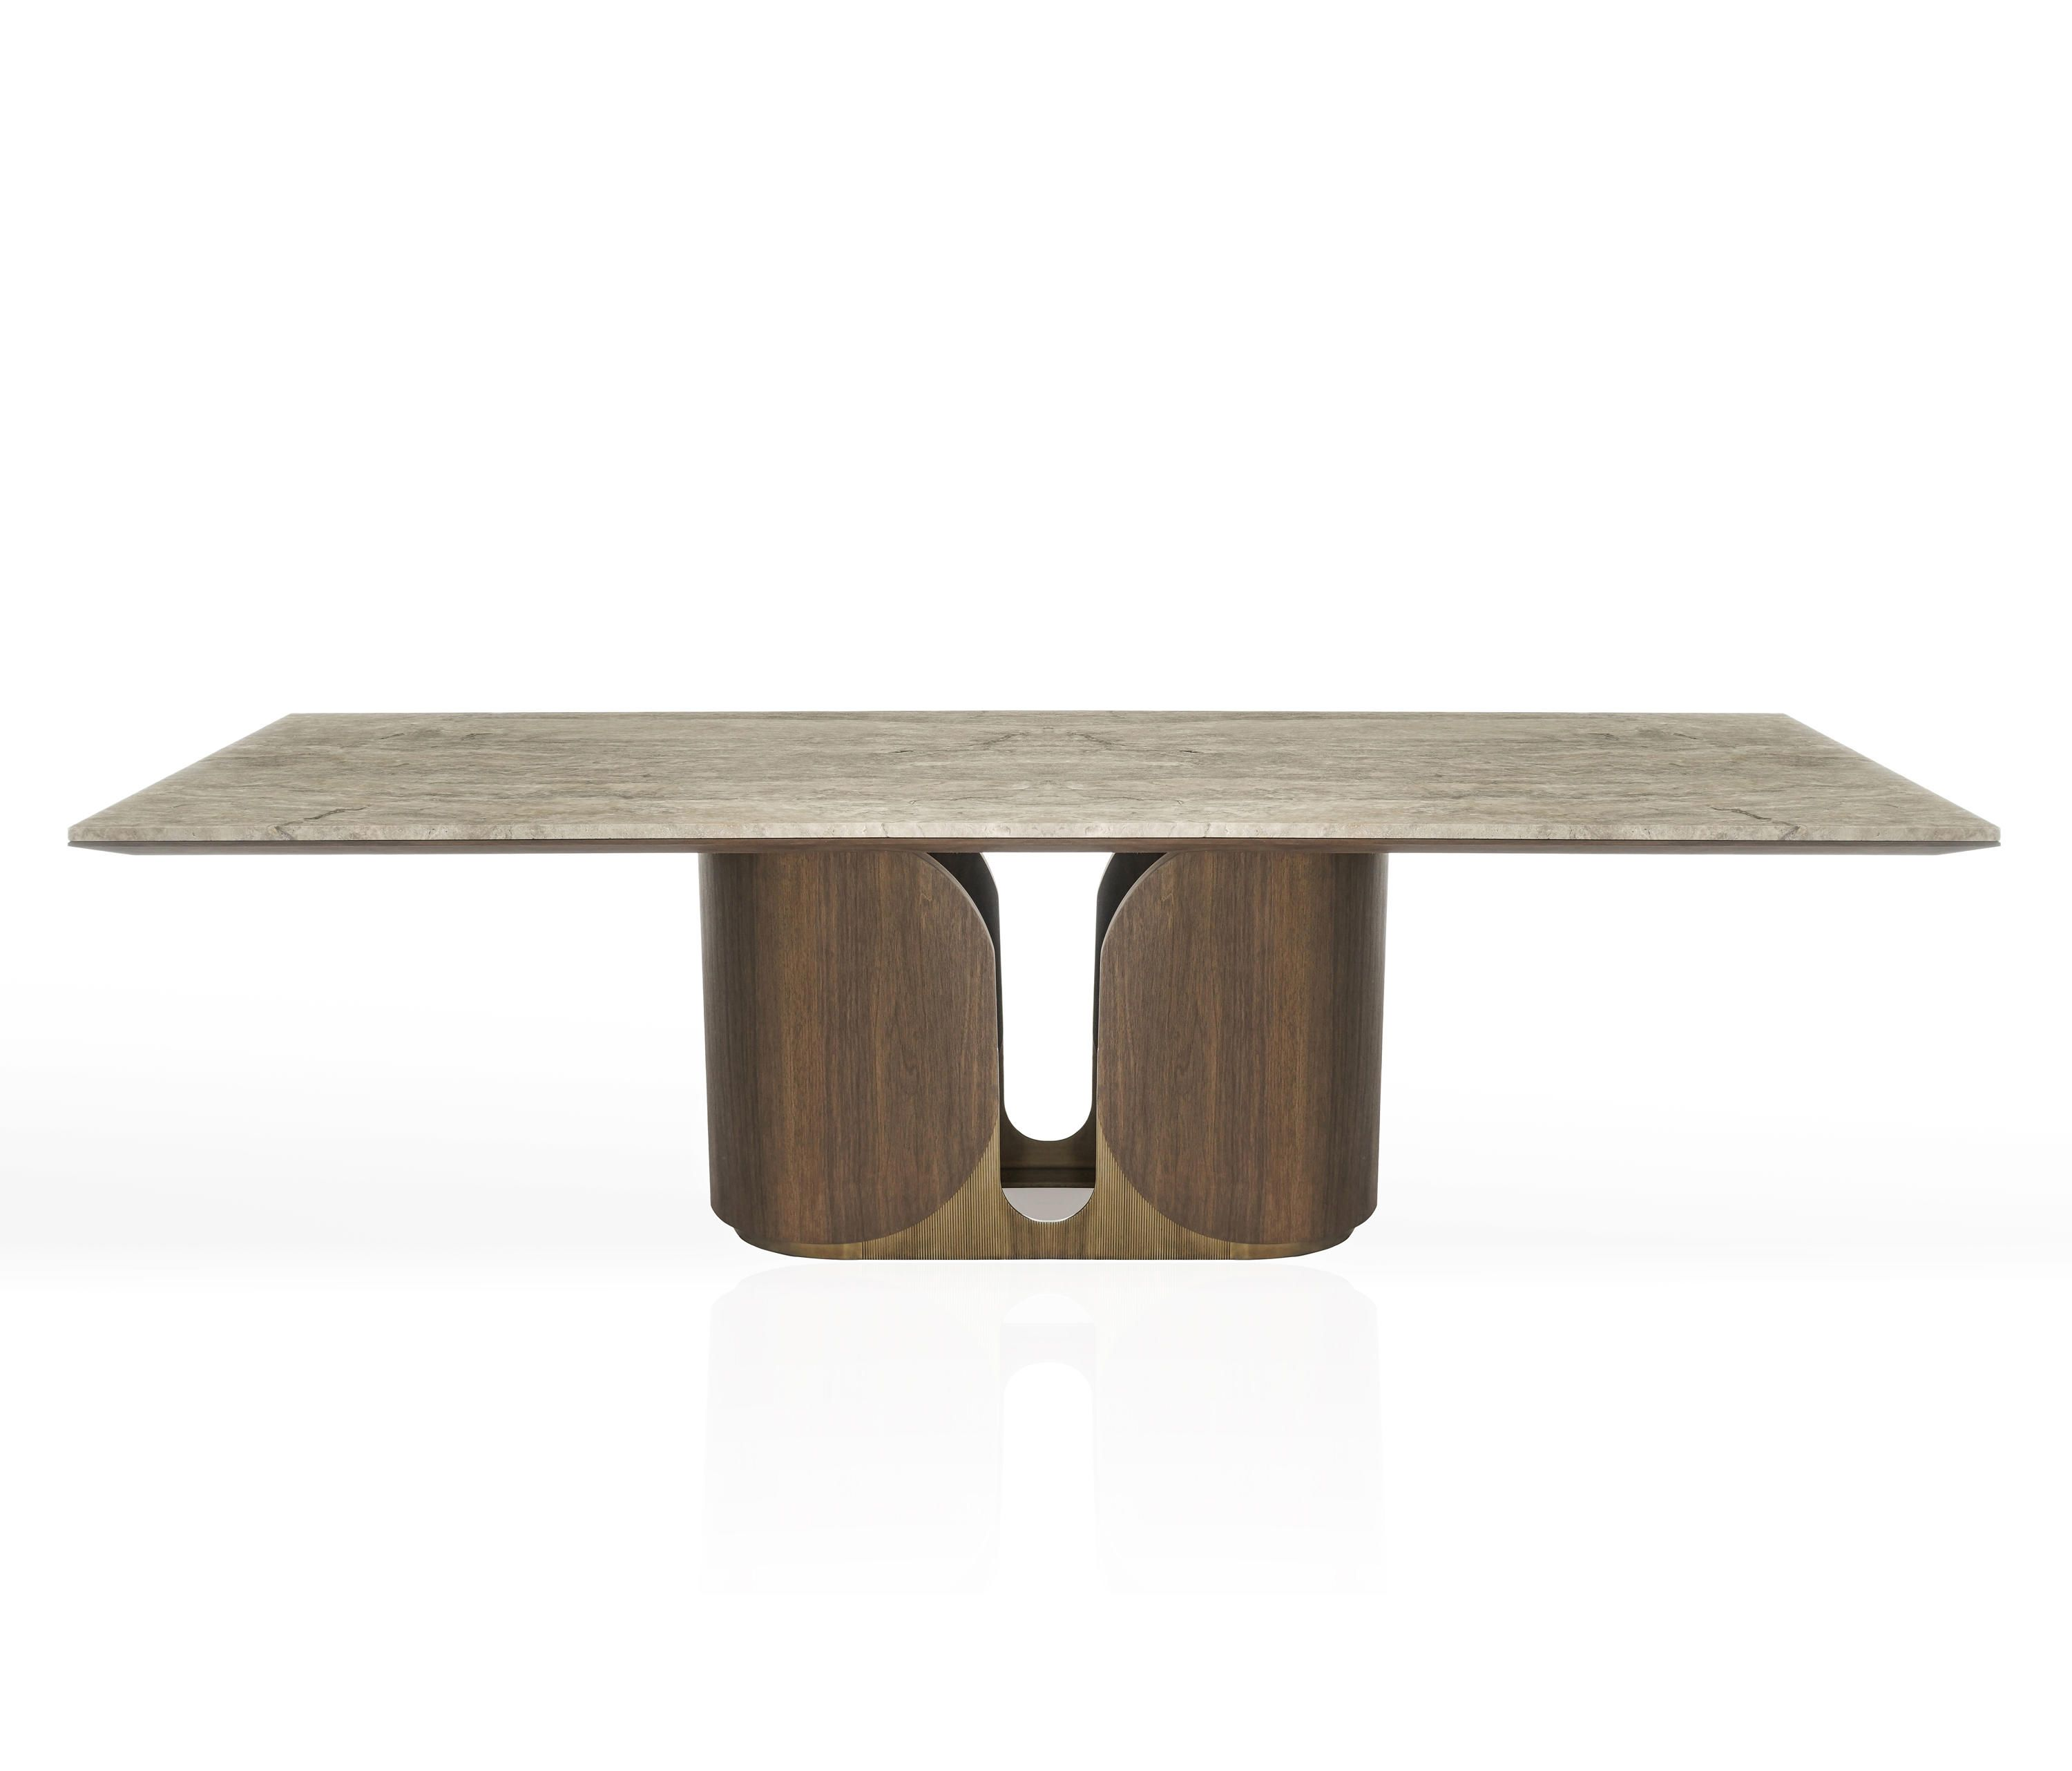 Horus Table Designer Dining Tables From Enne All Information